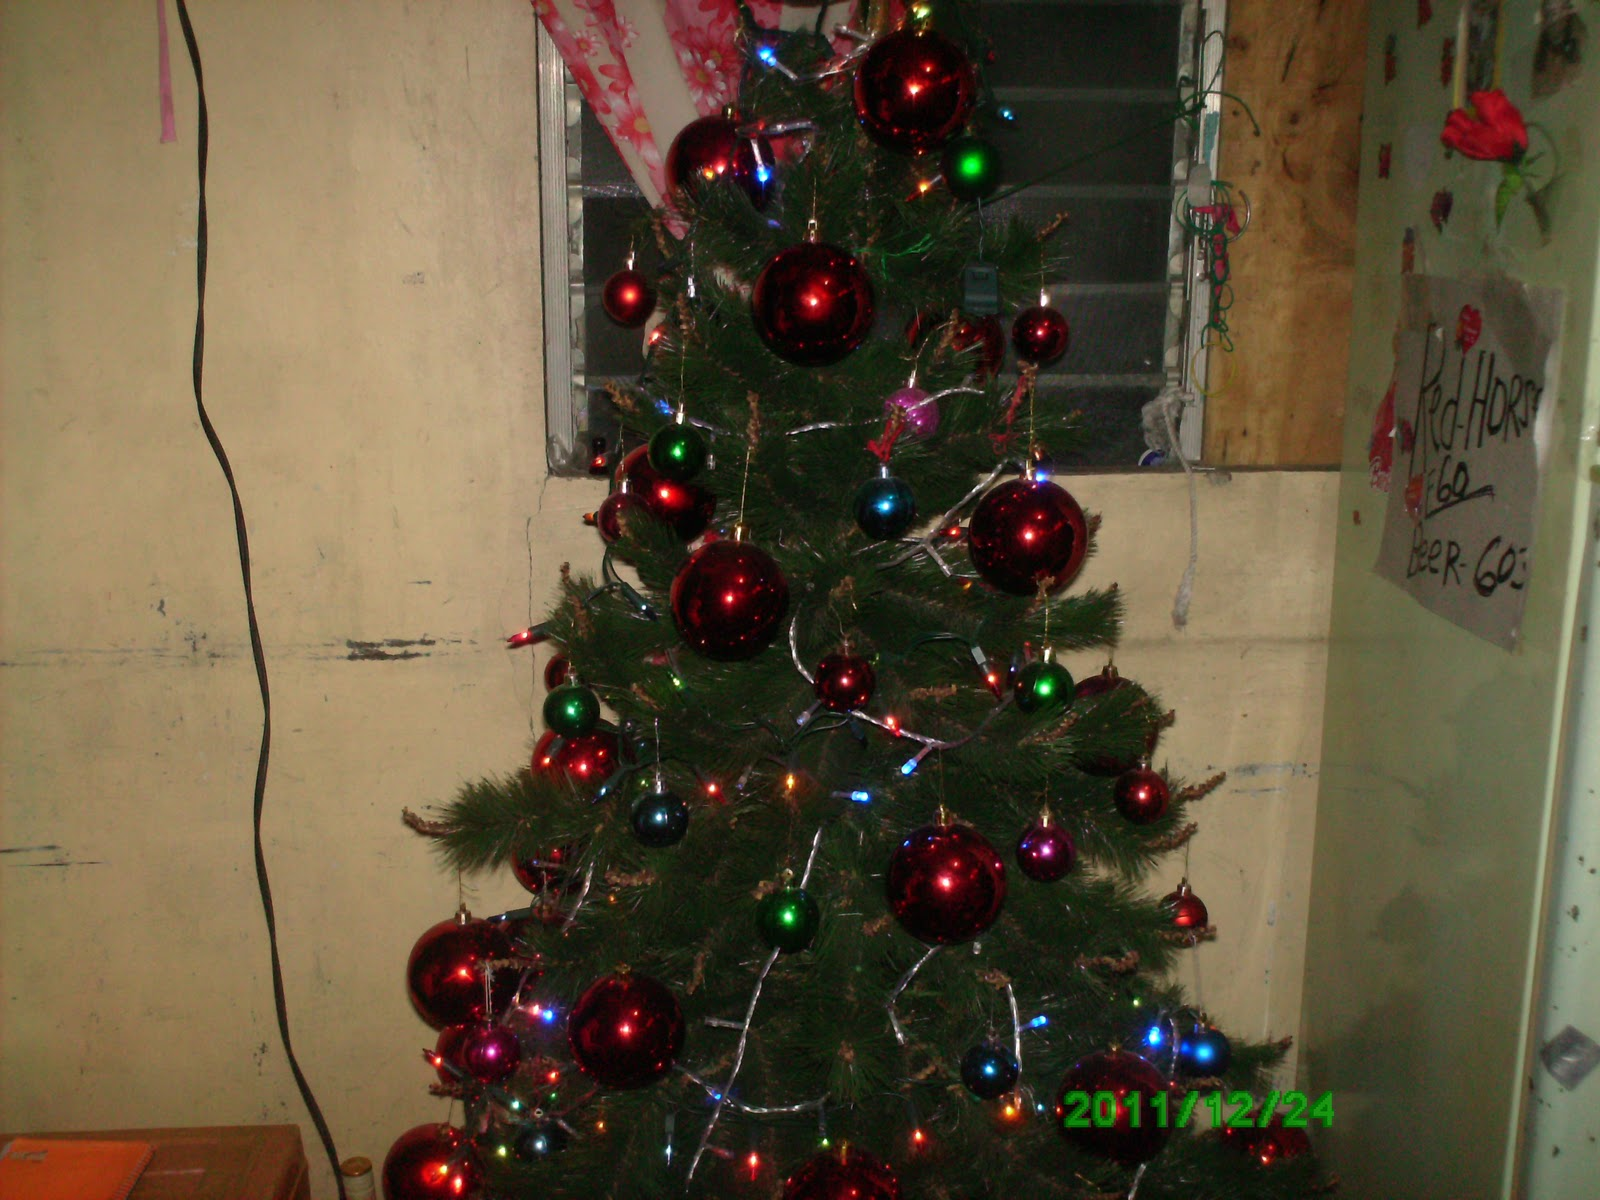 Simple Christmas Tree Decorations Philippines.Active Life Rejoicing Noche Buena In Filipino Manner